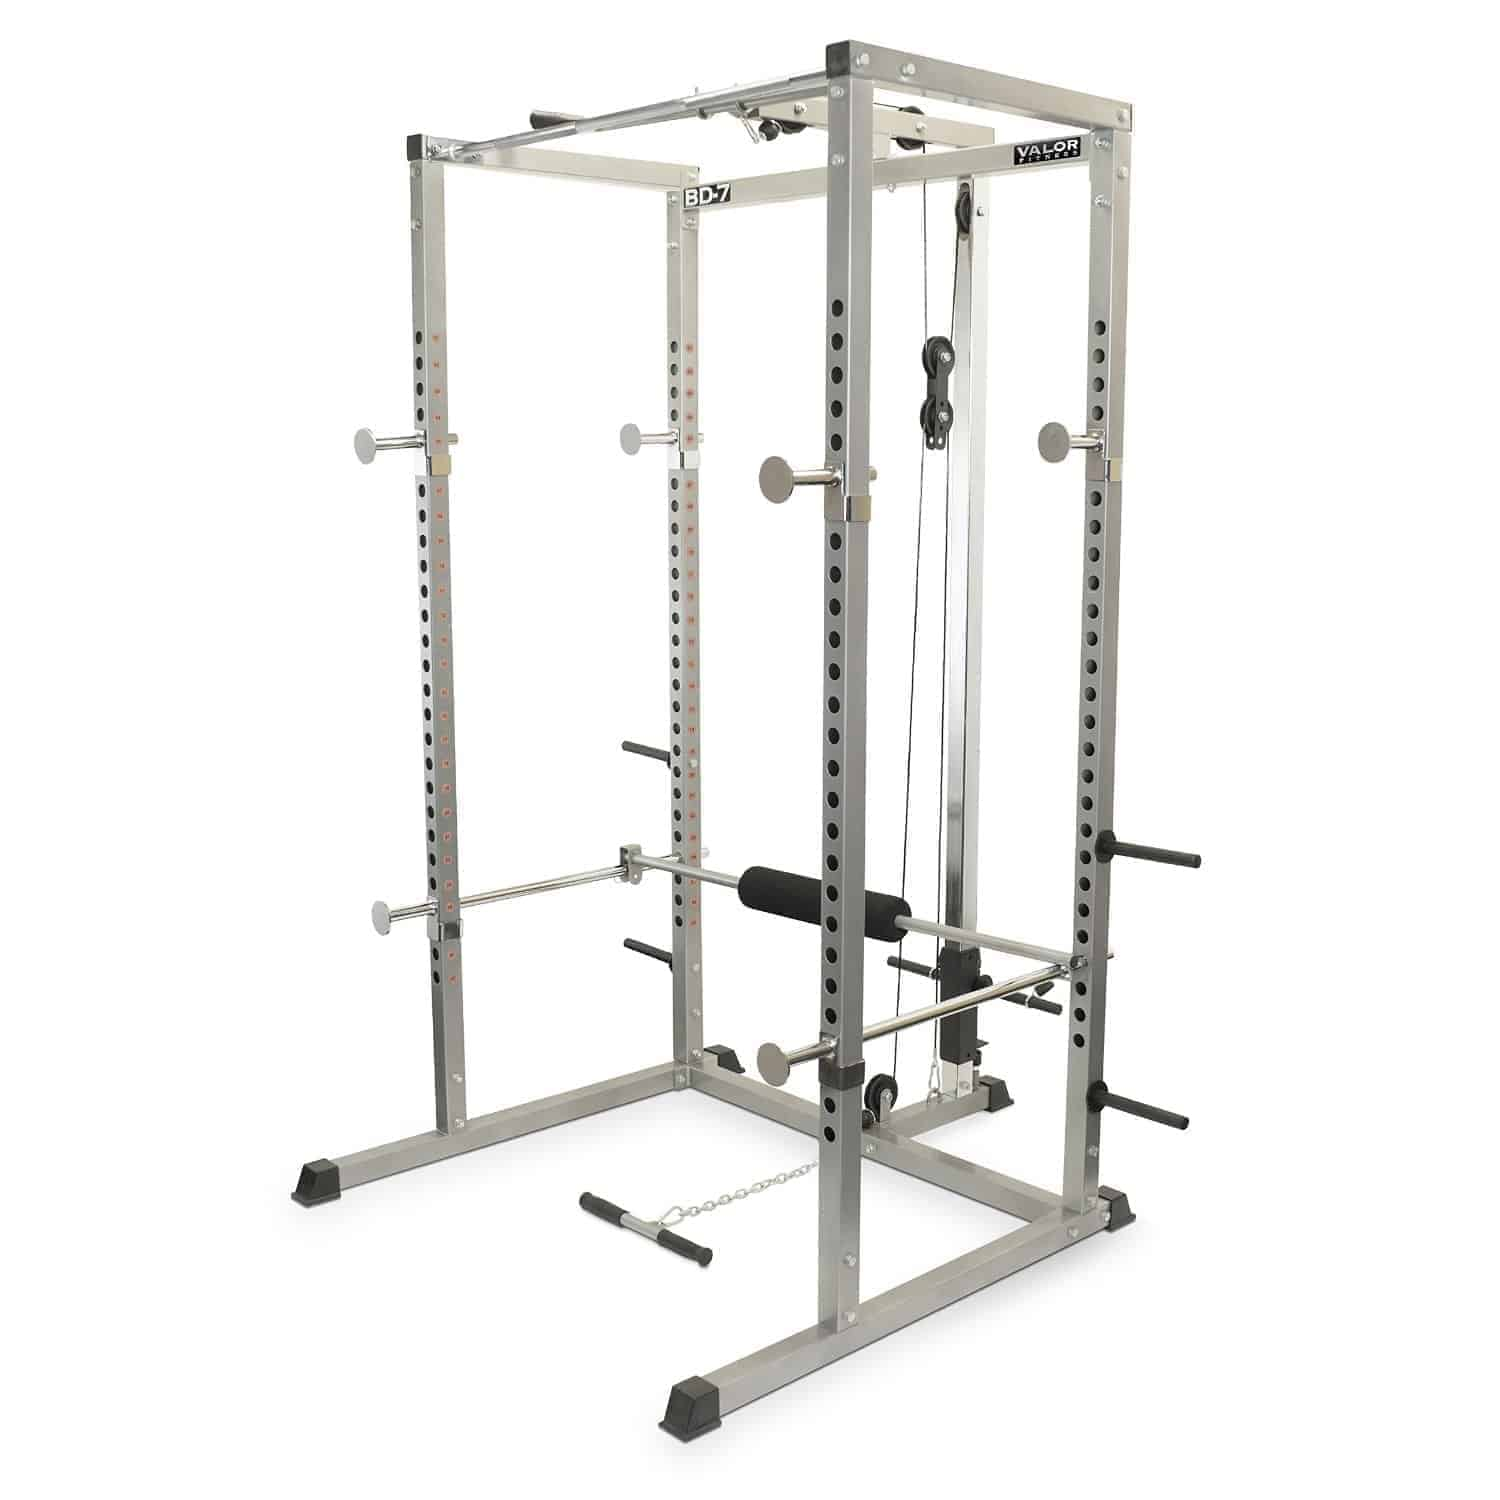 Best 6 Power Rack Reviews & Guide to Get Perfect Cage for Home